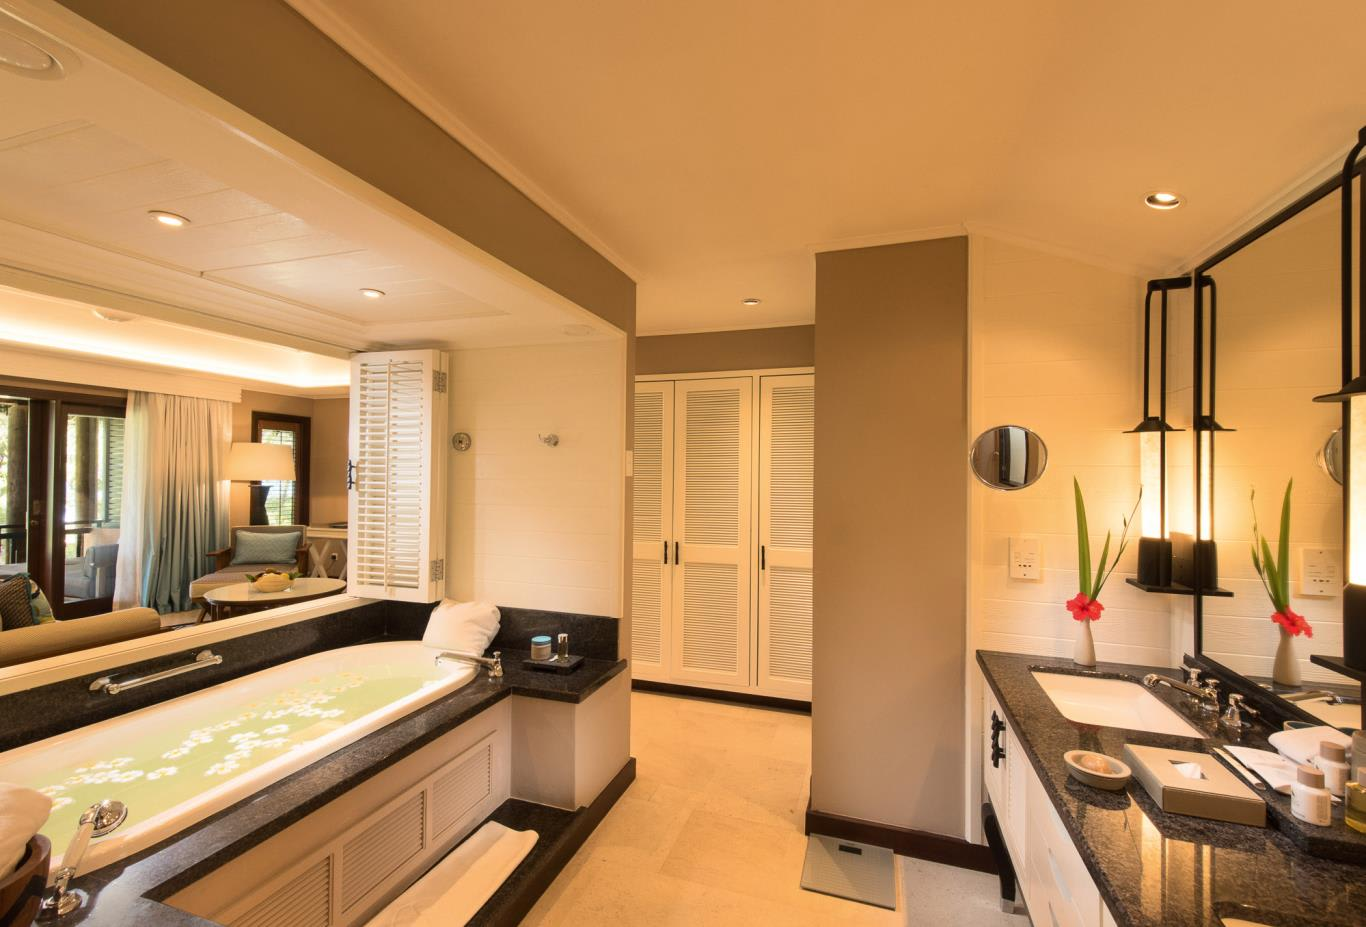 Junior-Suite bathroom